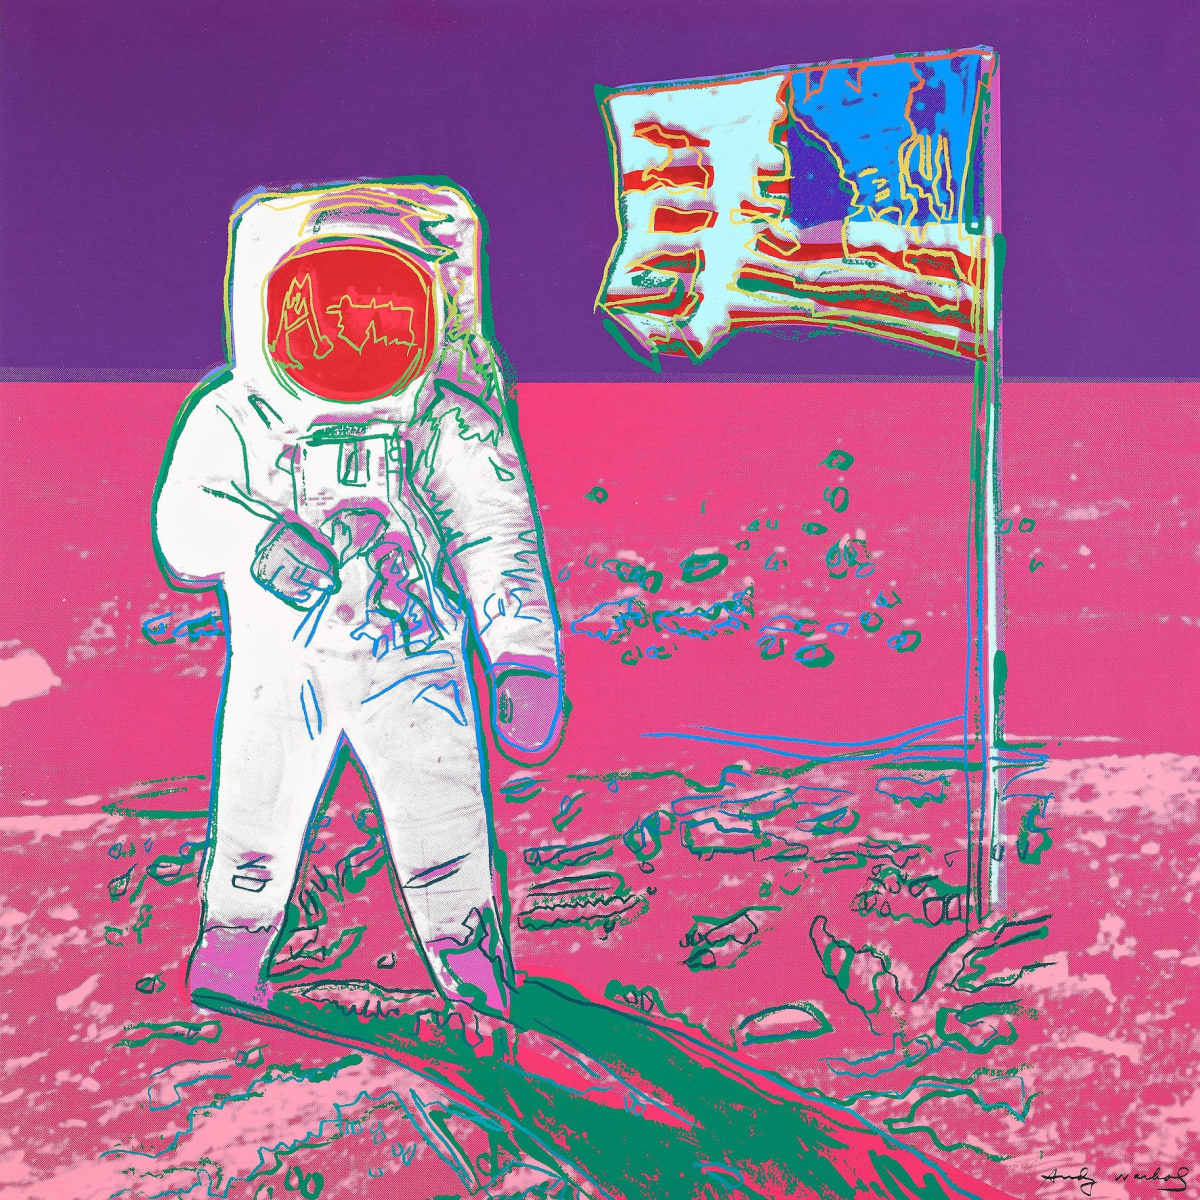 Andy Warhol, Unique Moonwalk, 1987 Screenprint on Lenox Museum Board 38 x 38 inches Edition of 66